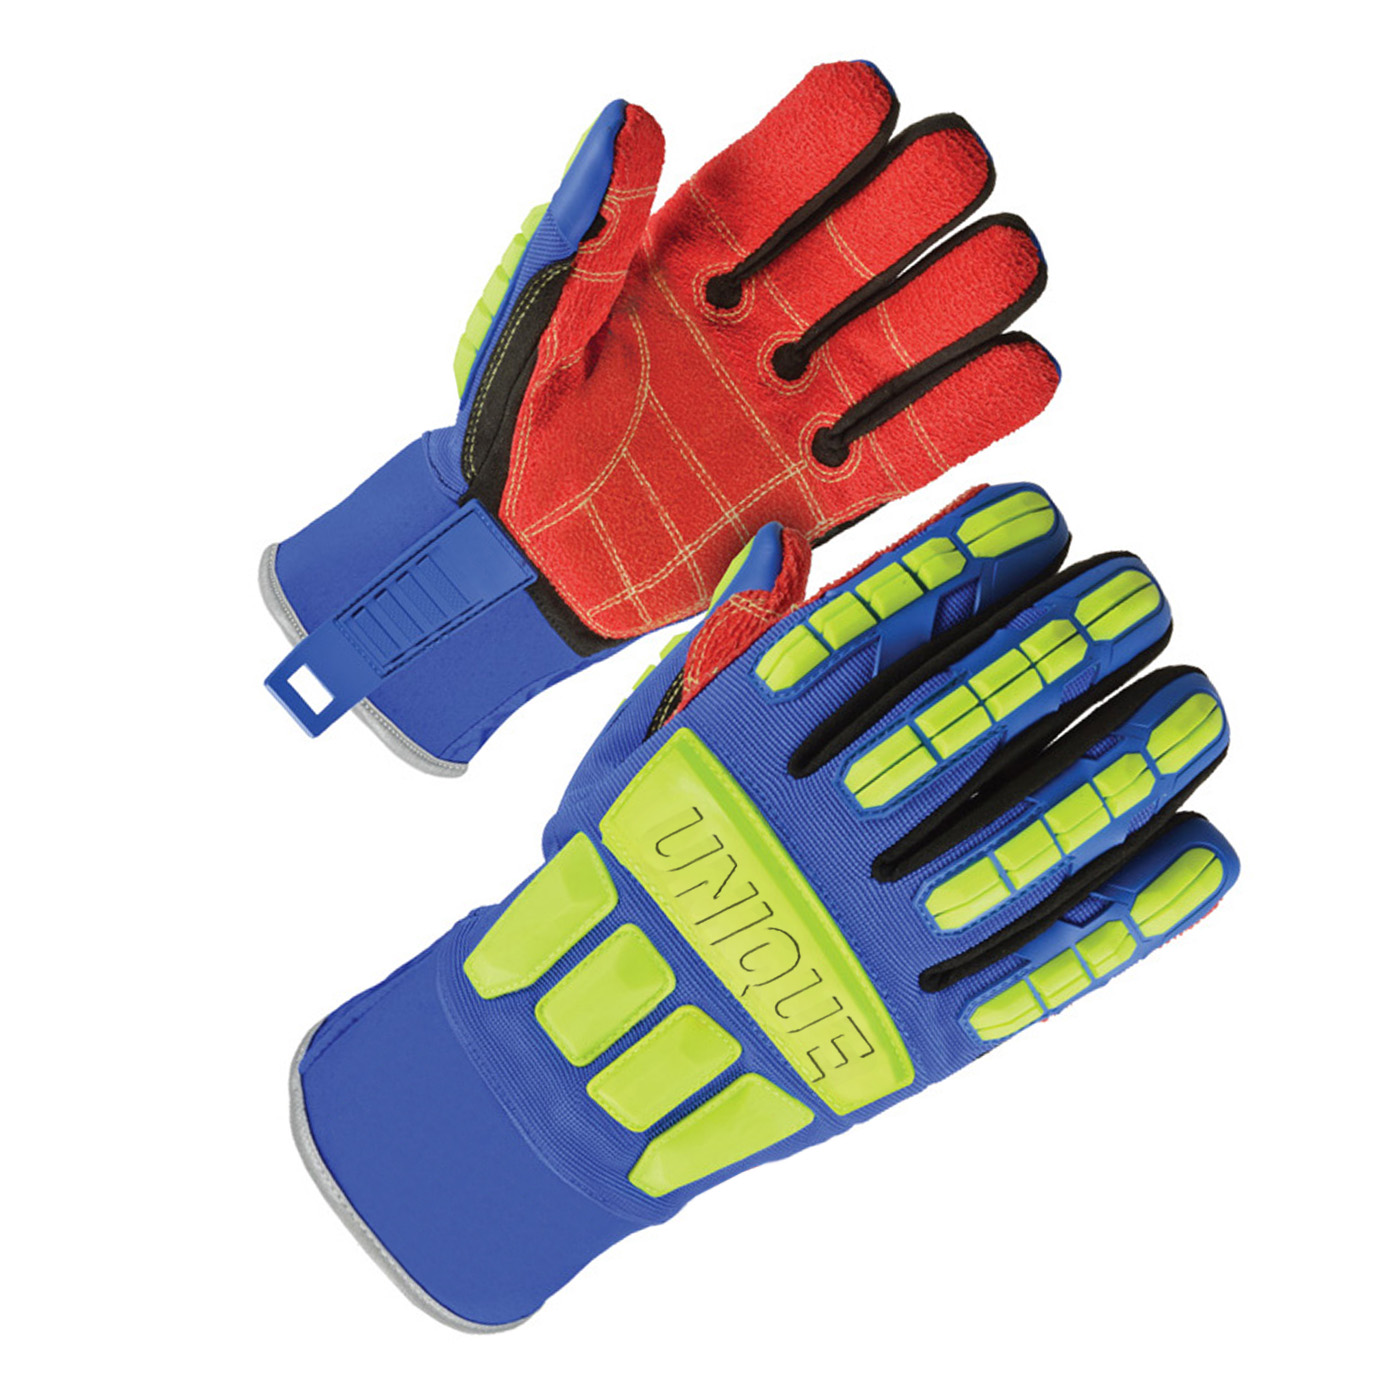 TPR Impact gloves with waterproof palm, ANSI